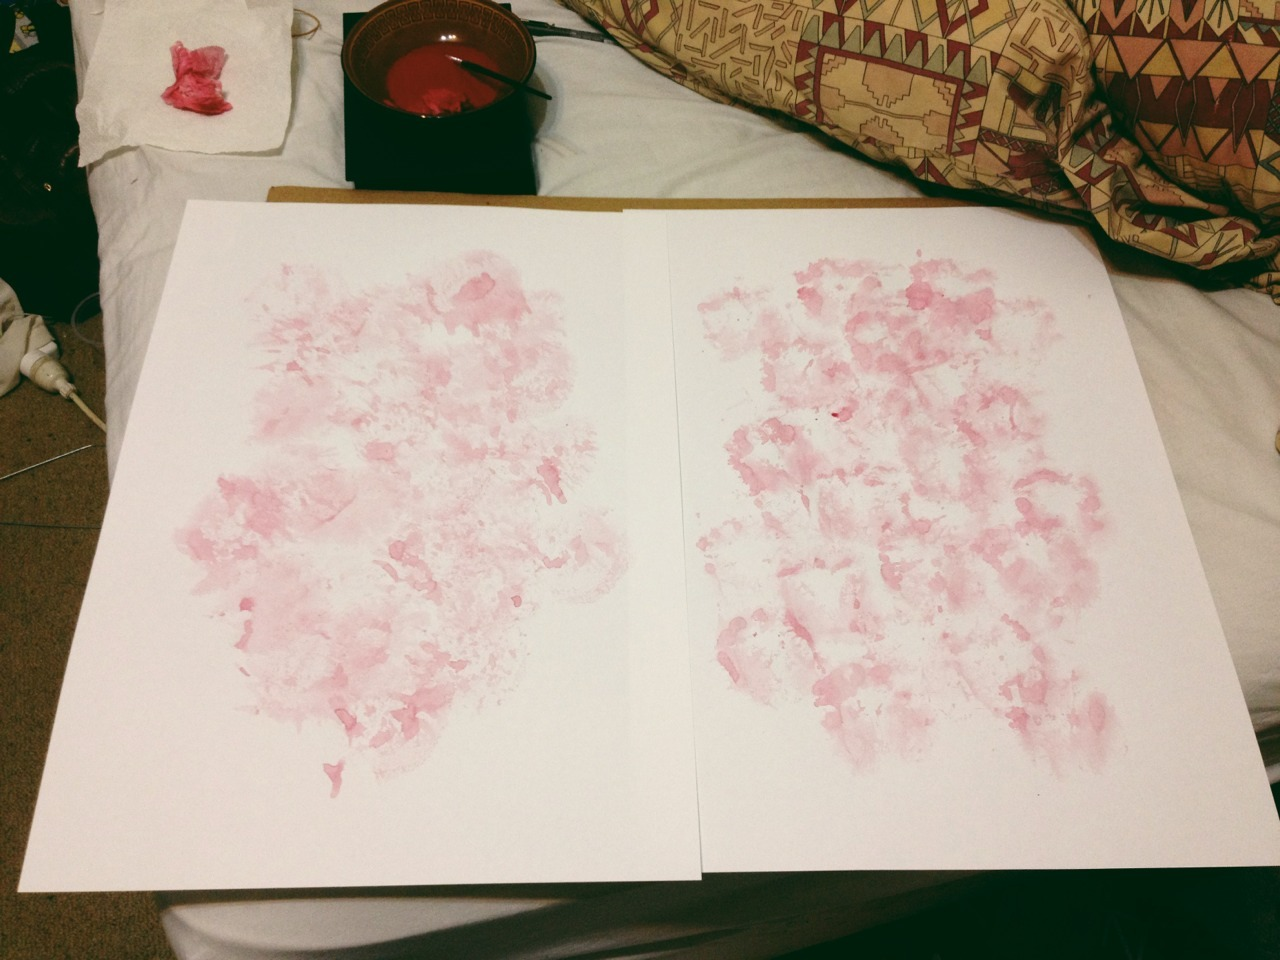 Making body prints for current series on intimacy. Can't decide if I want to sign/date the bottom or not.